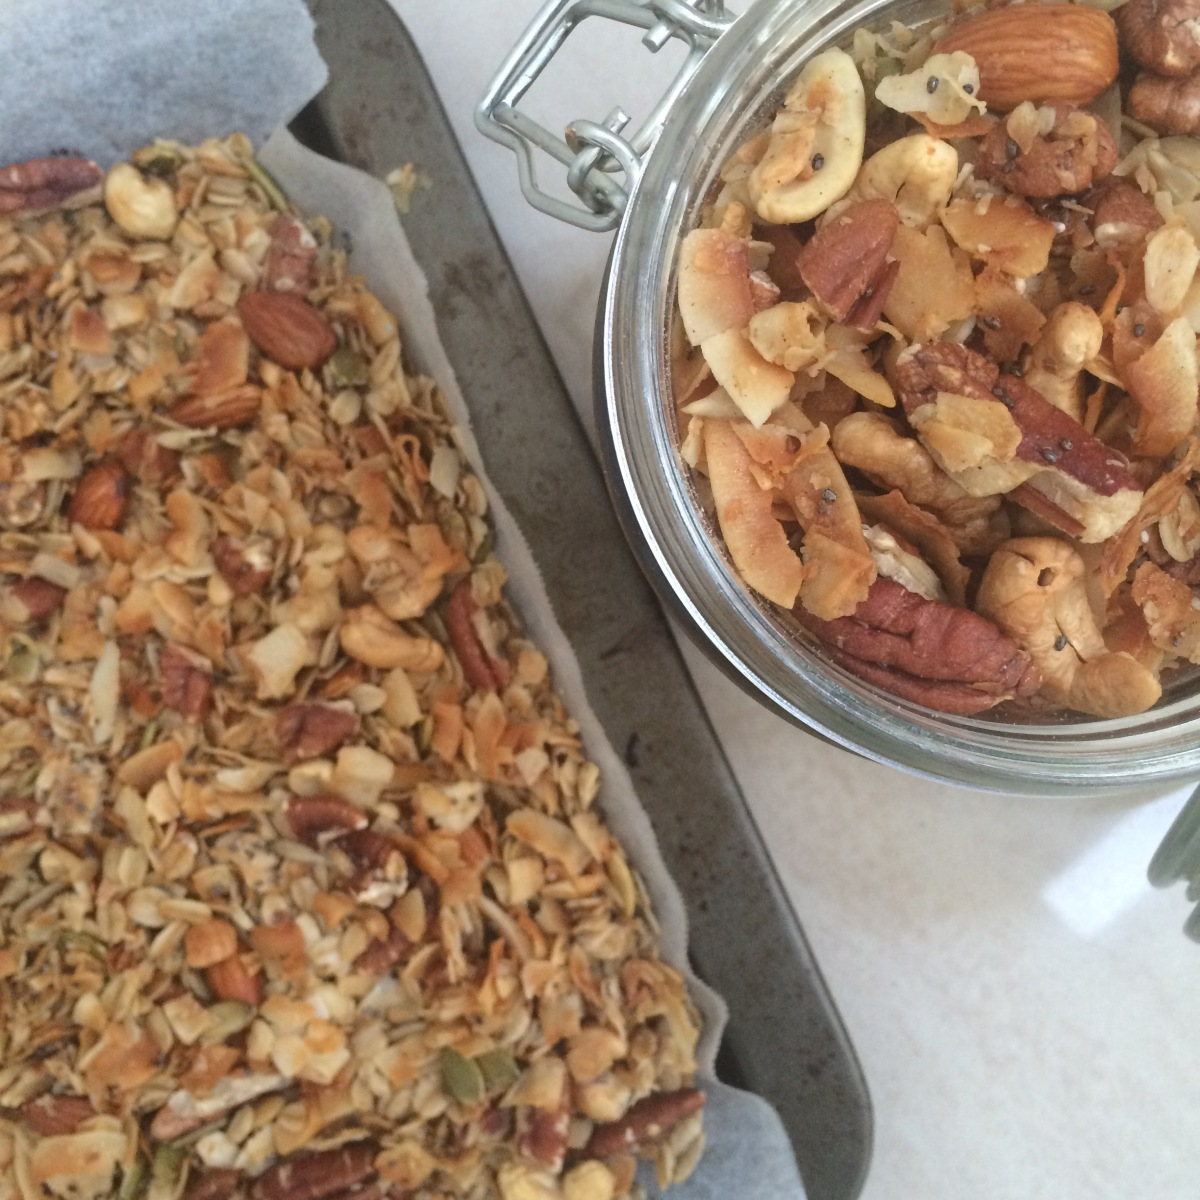 My Go-to Granola Recipe